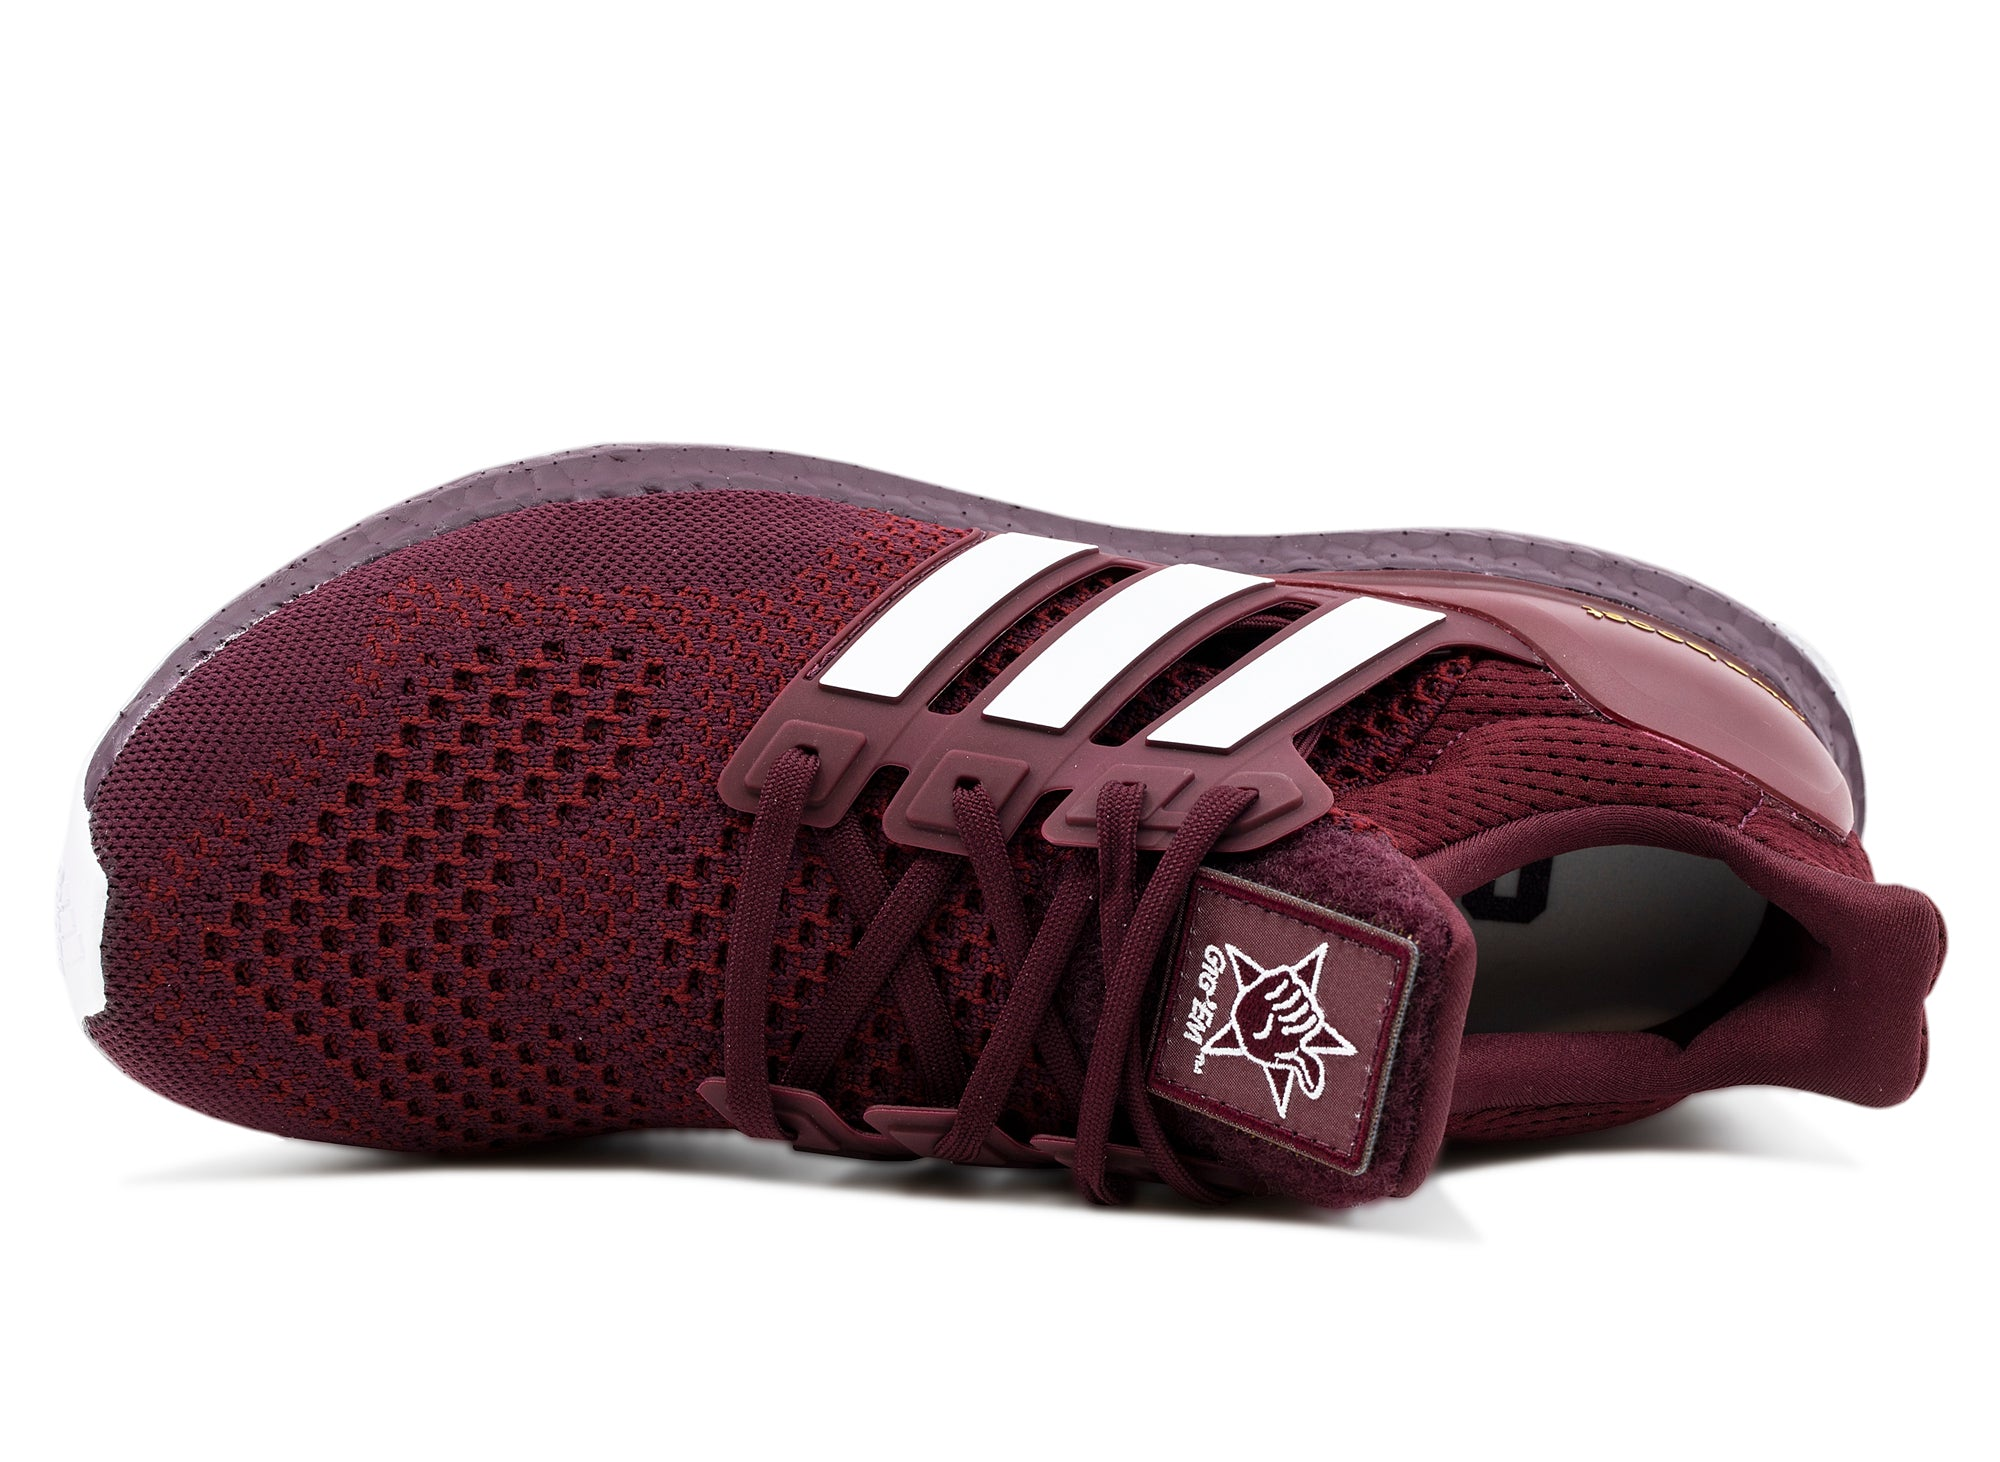 adidas Ultraboost 1.0 NCAA Pack 'Texas A&M' - Oneness Boutique